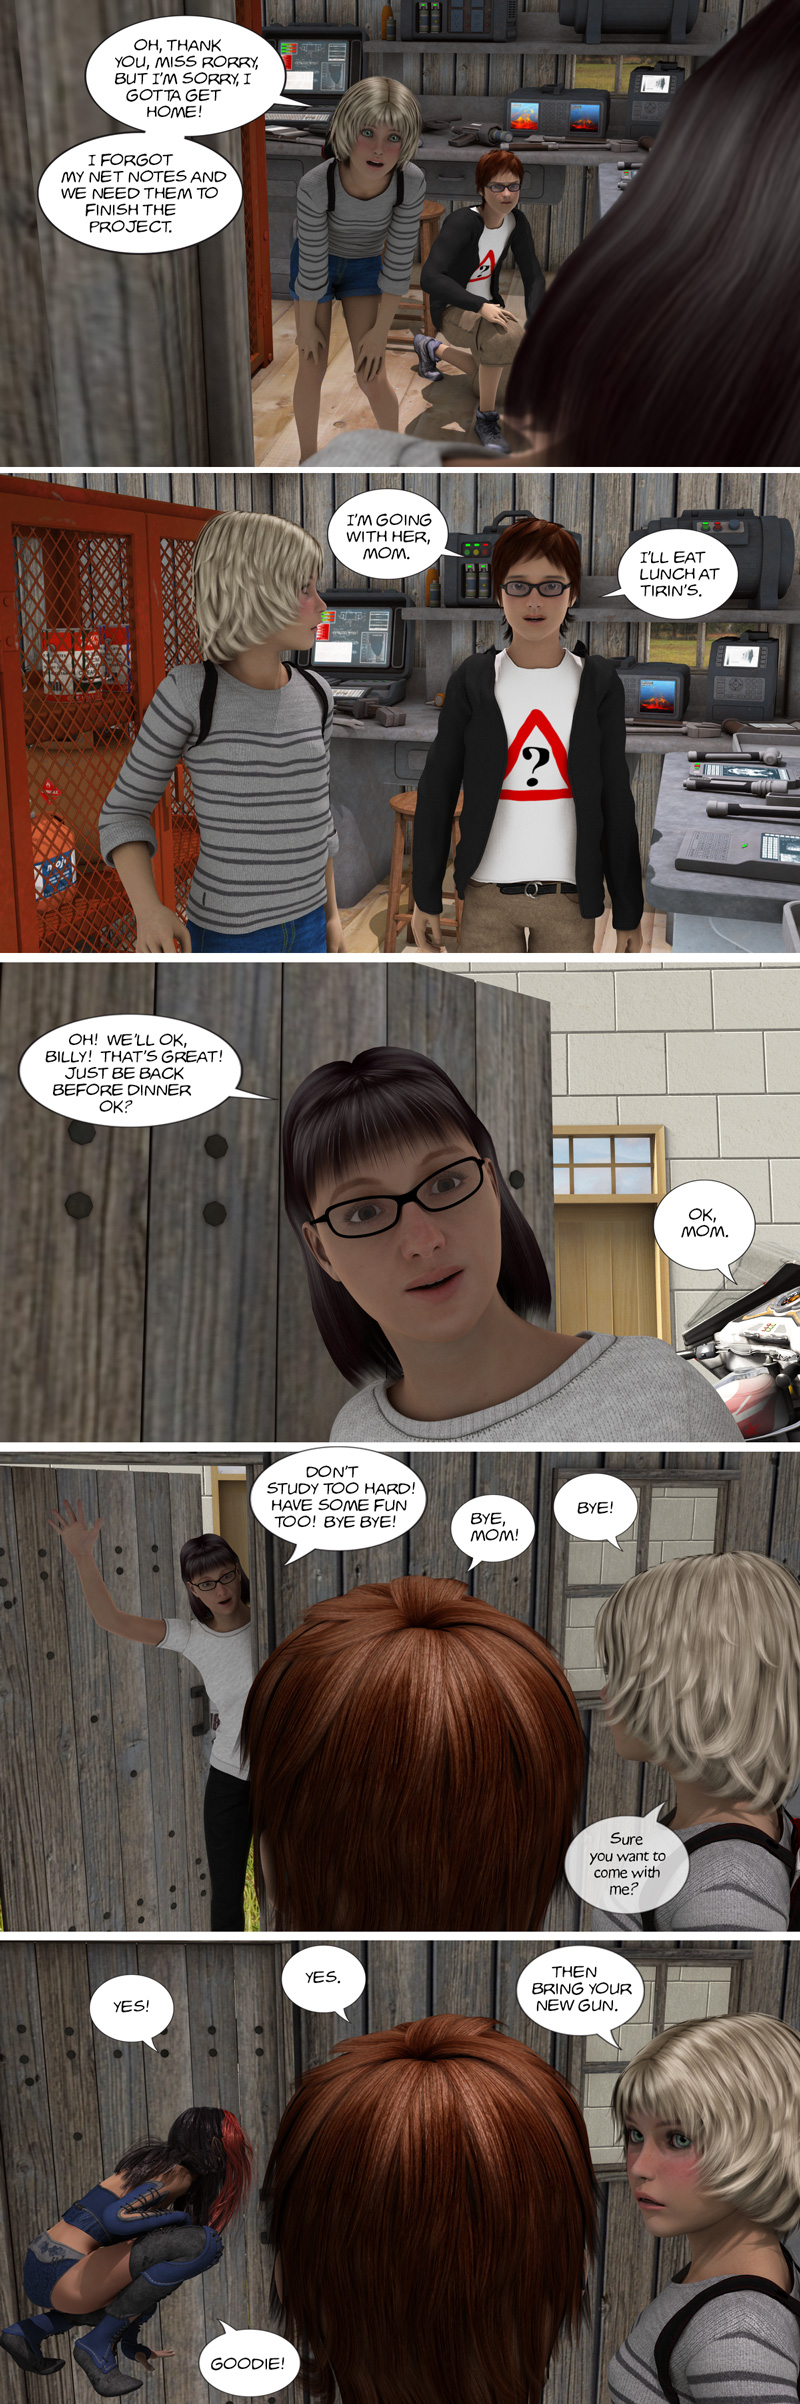 Chapter 11, page 22